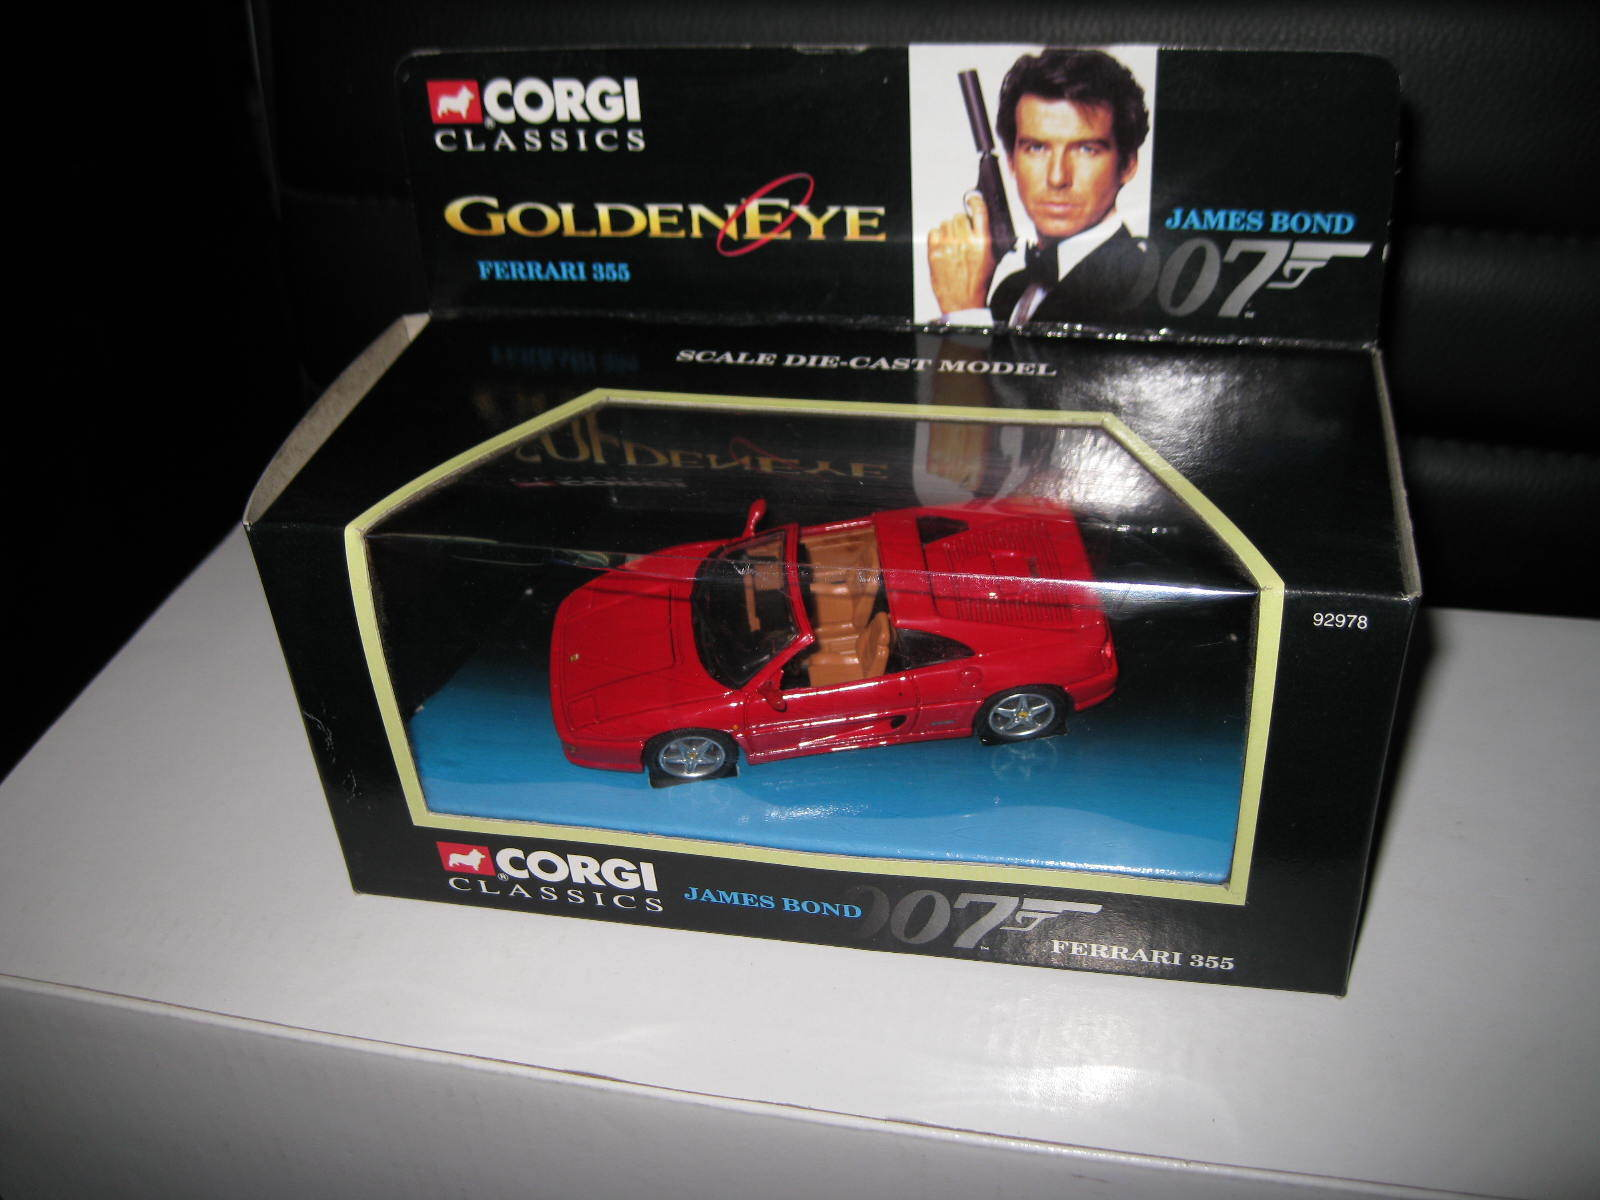 1 36 CORGI  JAMES BOND 007 FERRARI 355 RED FROM goldENEYE MOVIE AWESOME